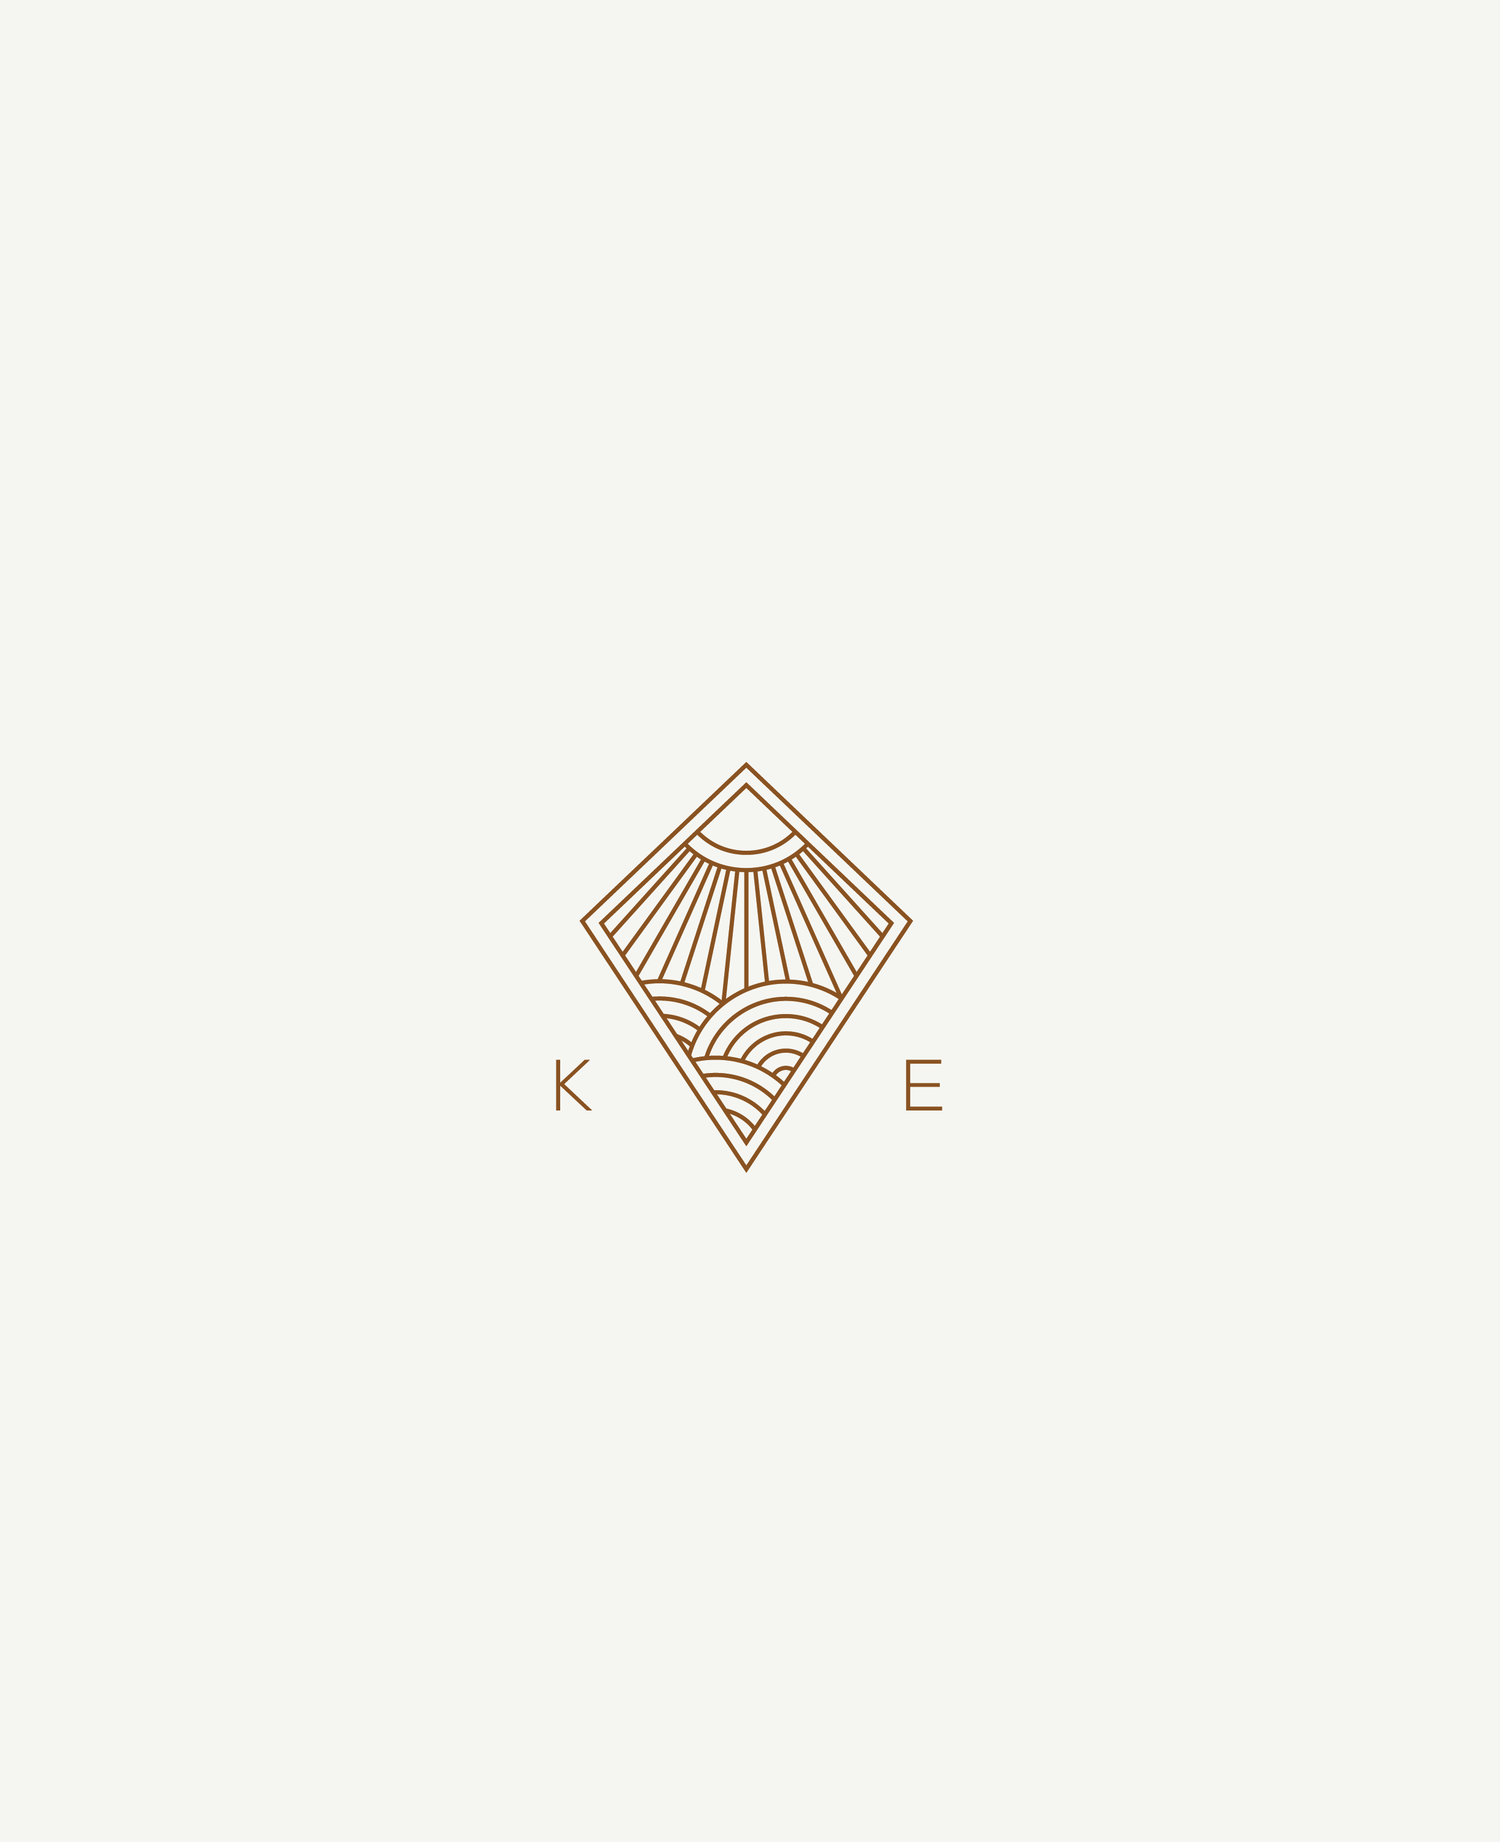 Logo Inspiration Minimalist With Neutral Color Tones Branding By